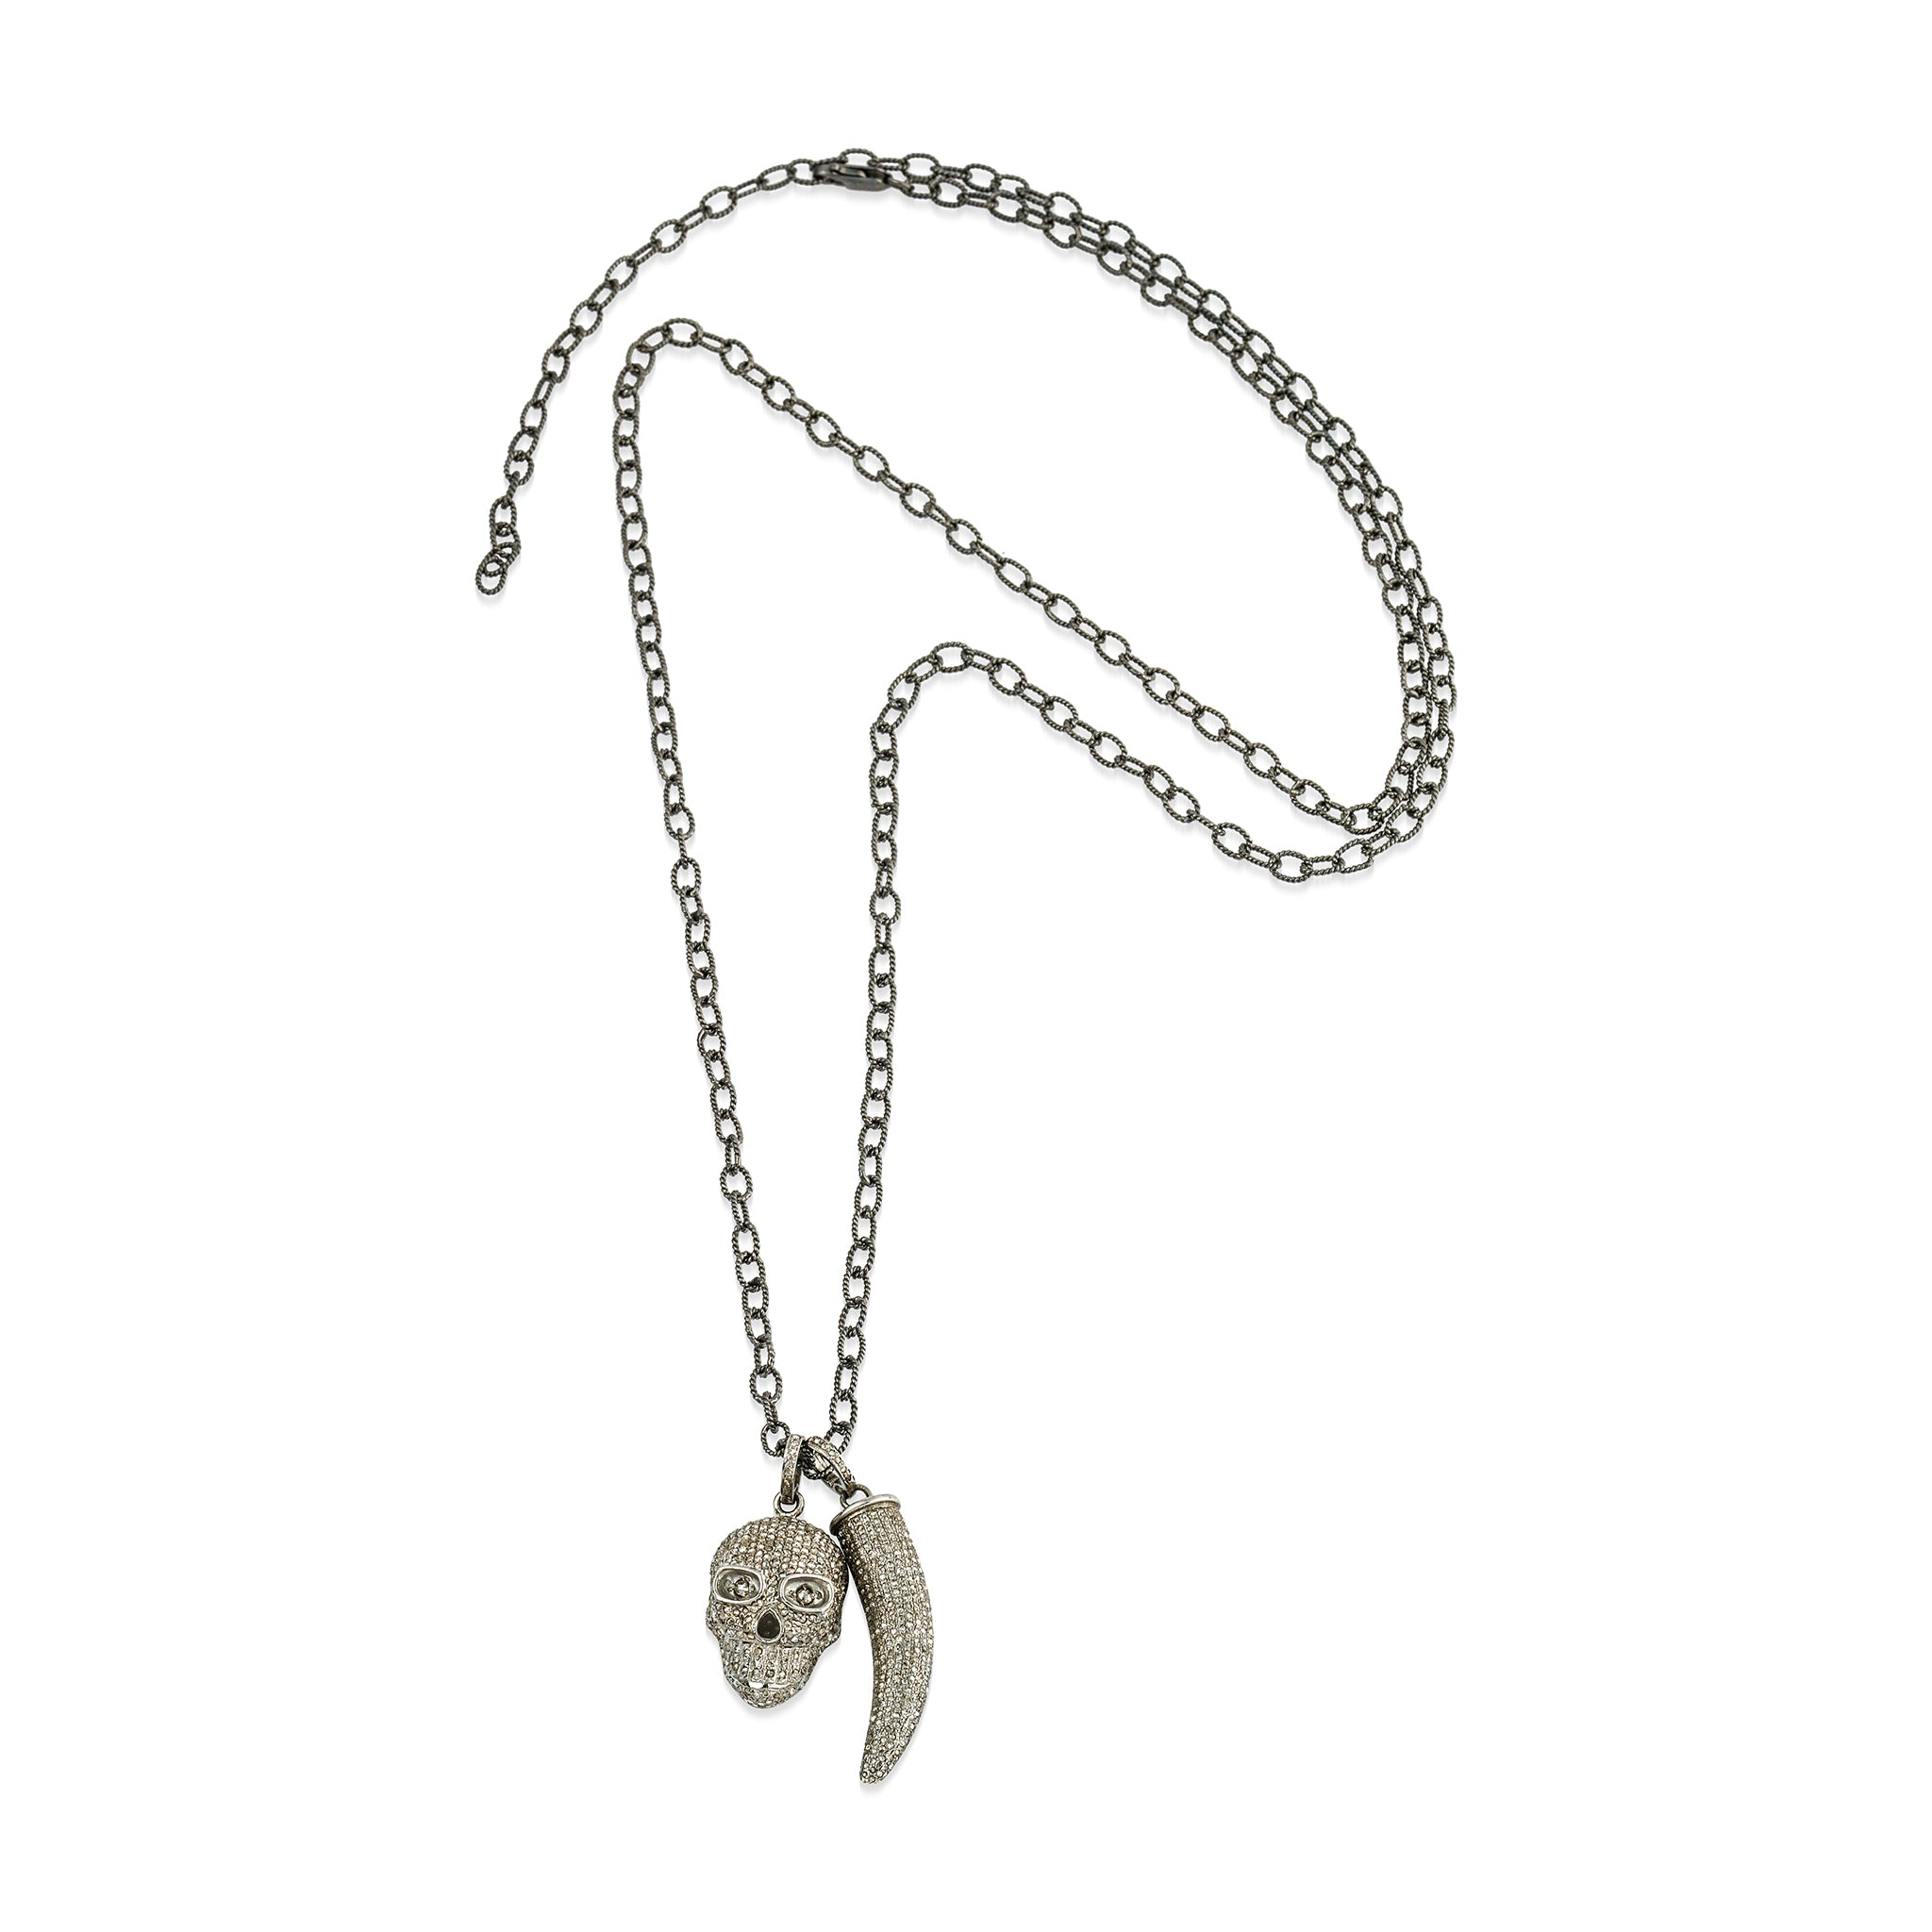 Diamond Skull and Horn Charm Necklace - DilaraSaatci